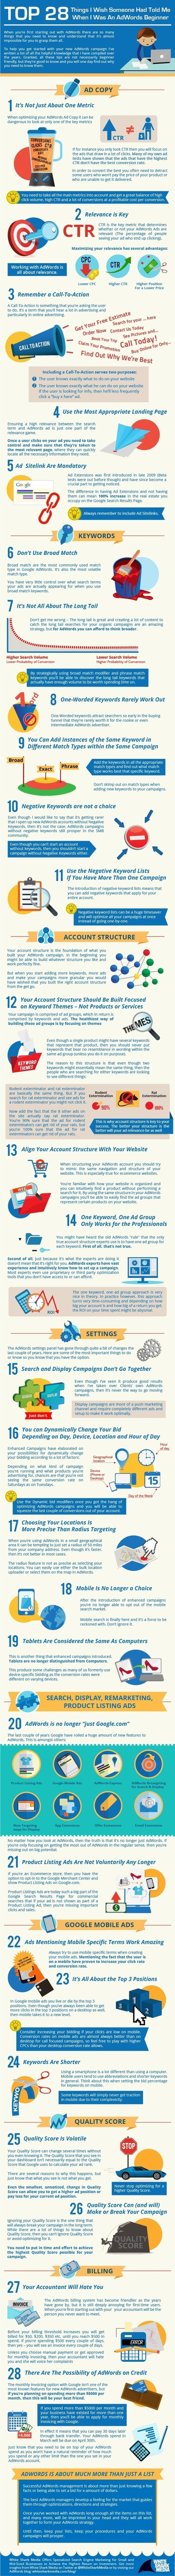 28 Tips For AdWords Beginners I Wish Someone Had Told Me [Infographic] | Curation SEO & SEA | Scoop.it